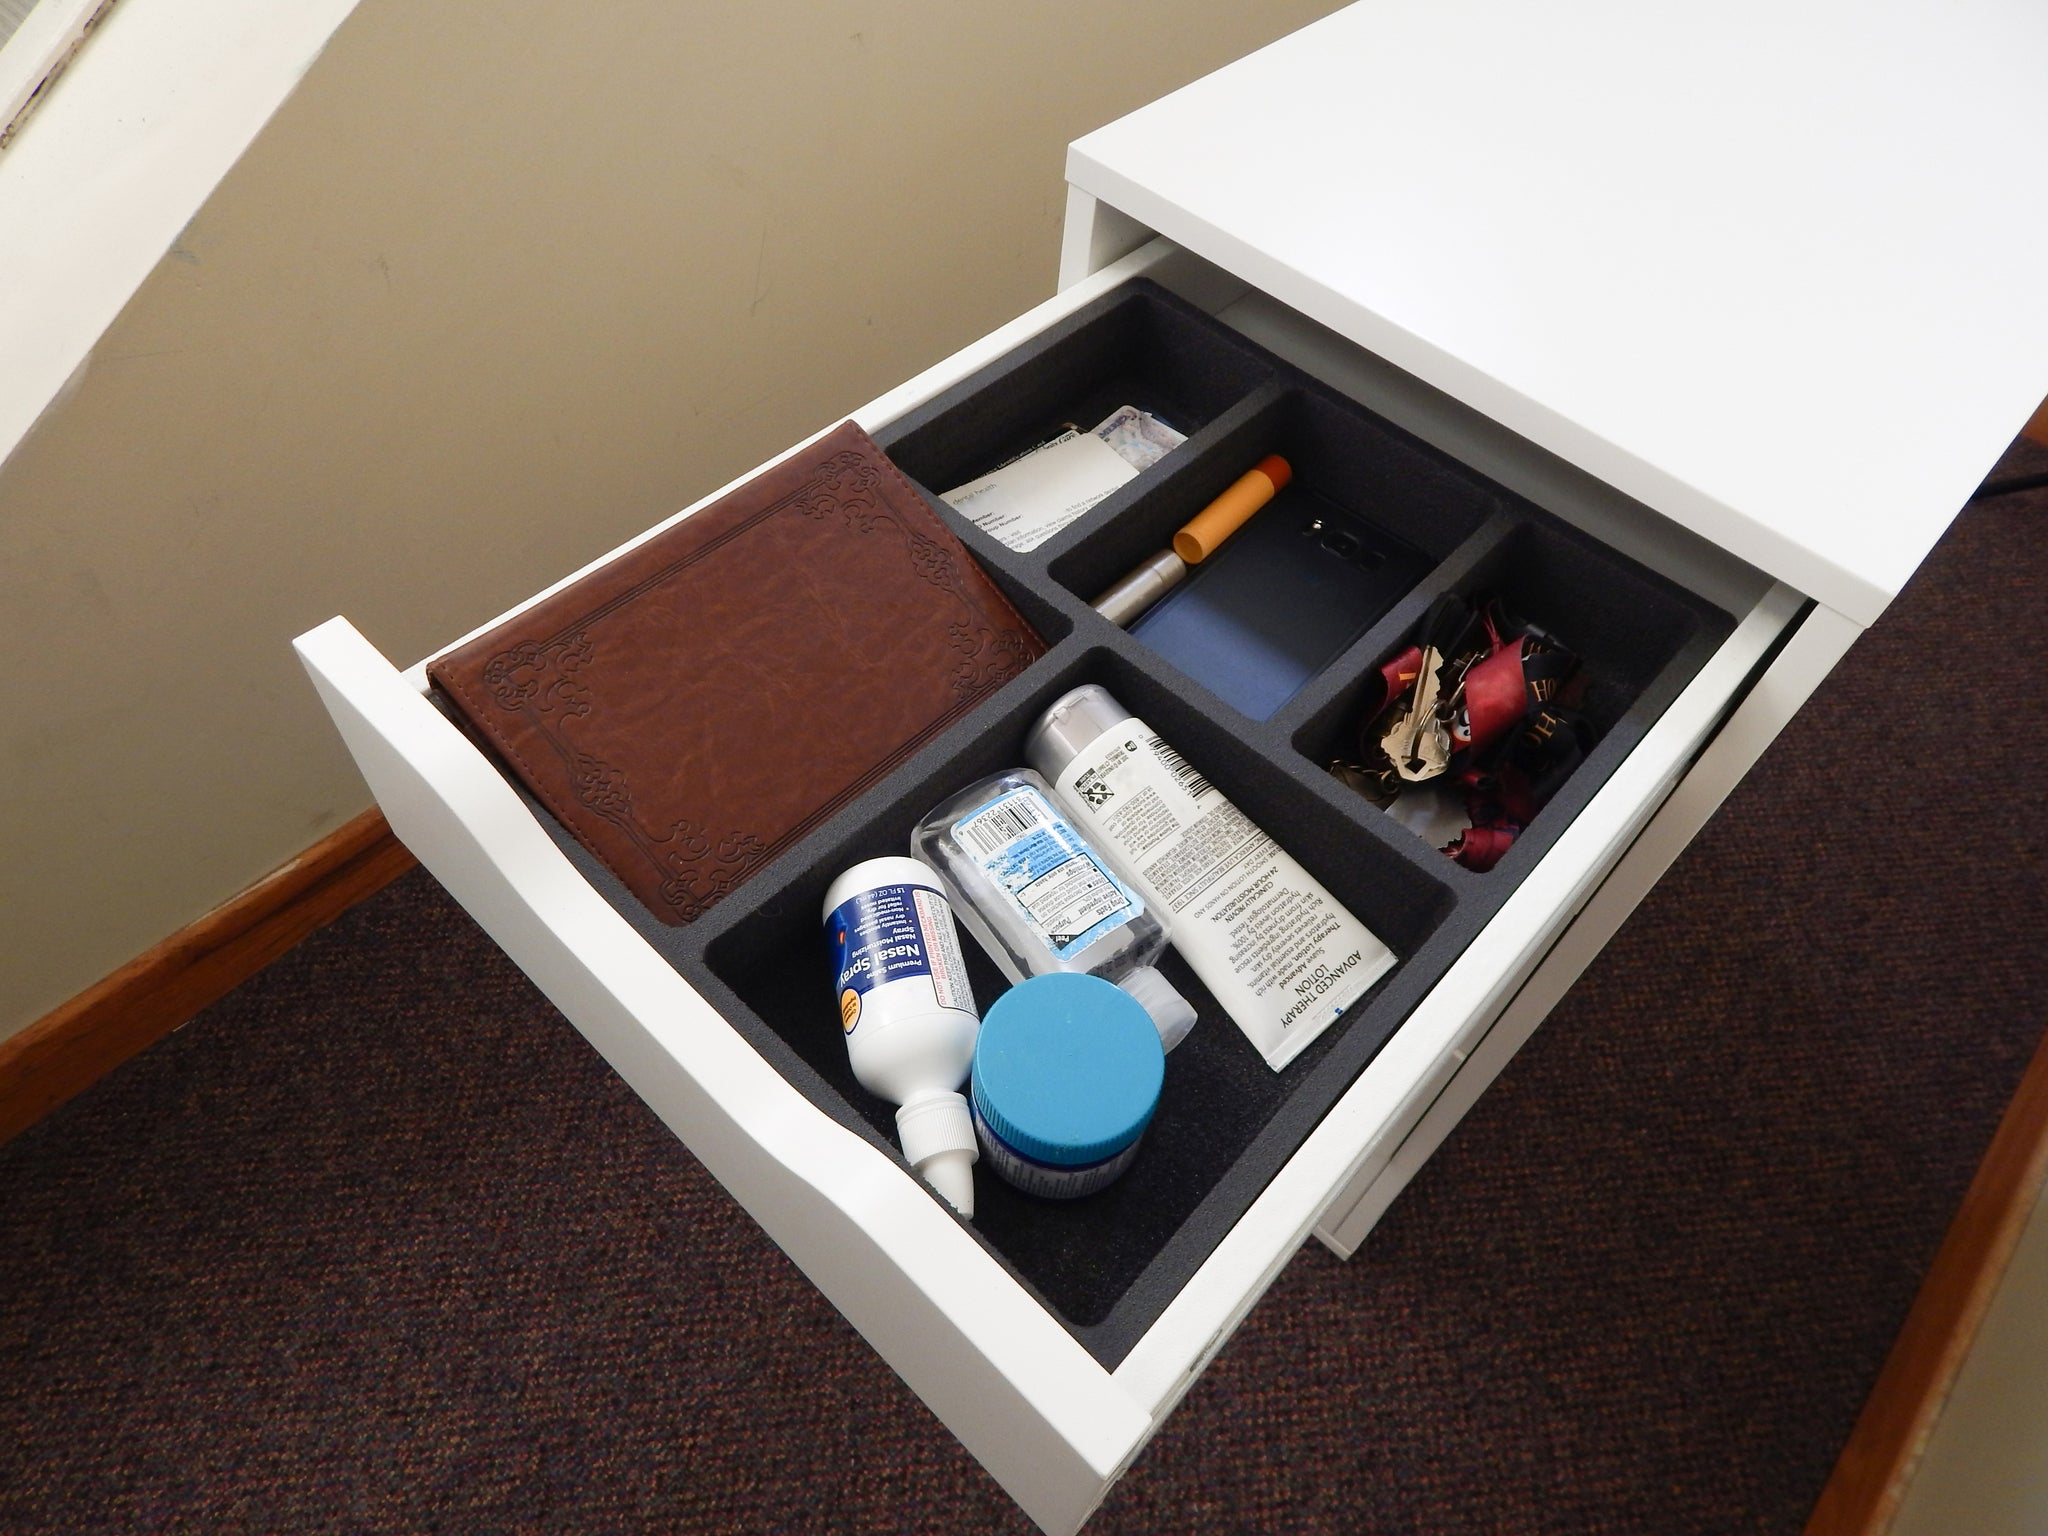 Polar Whale Drawer Organizer Compatible with Ikea Alex Tray Non-Slip Waterproof Insert for Office Home Dorm Garage  11.5 X 14.5 X 2 Inches 5 Compartments Black Deep Pockets